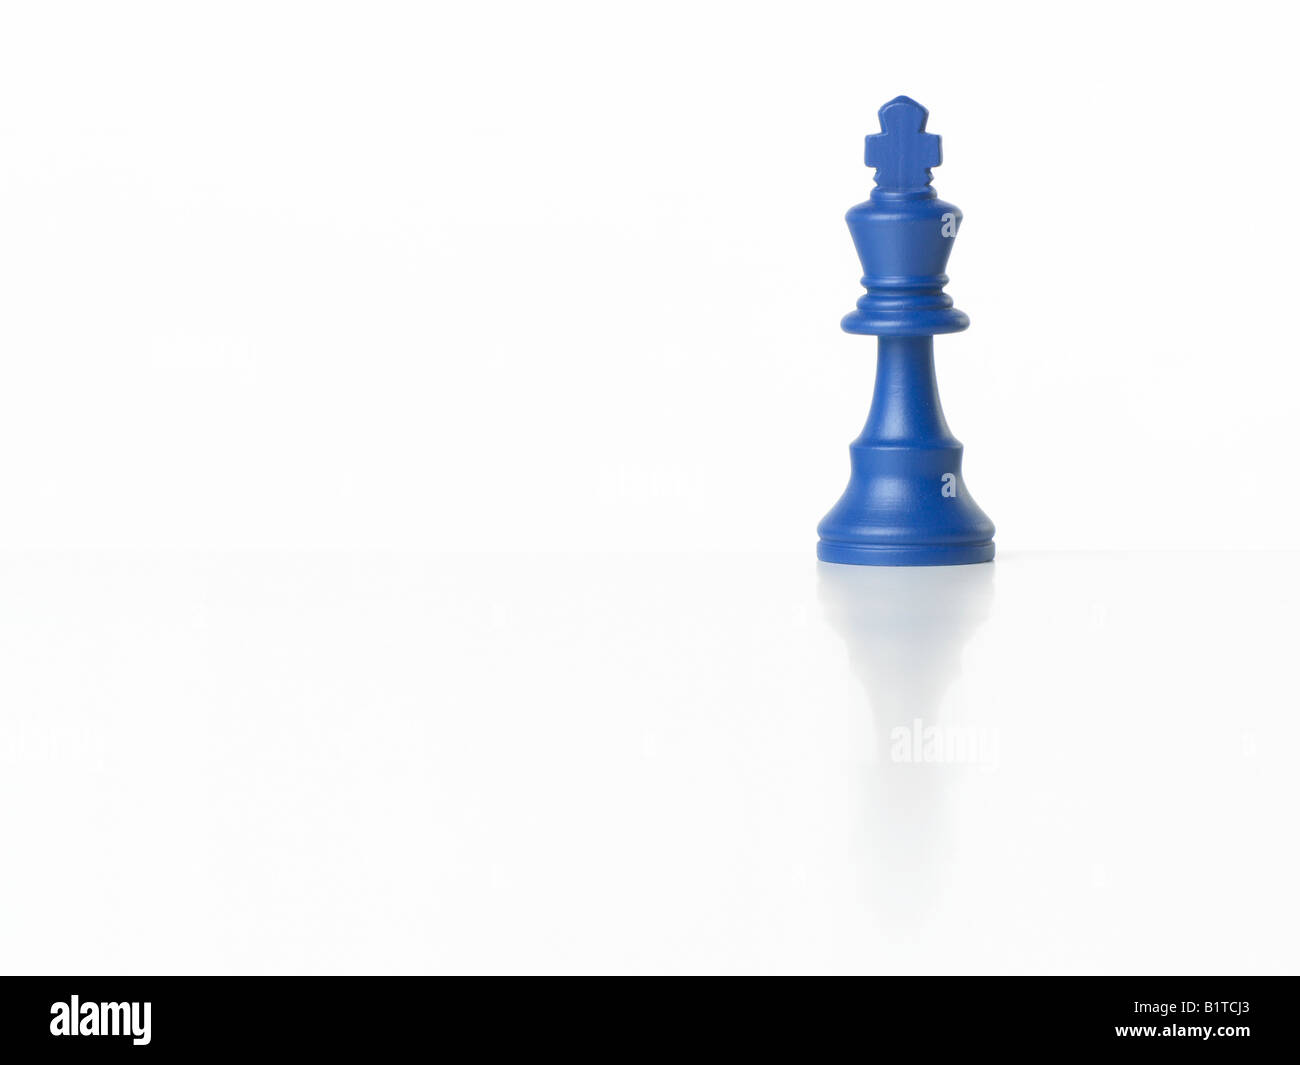 blue king chess piece - Stock Image